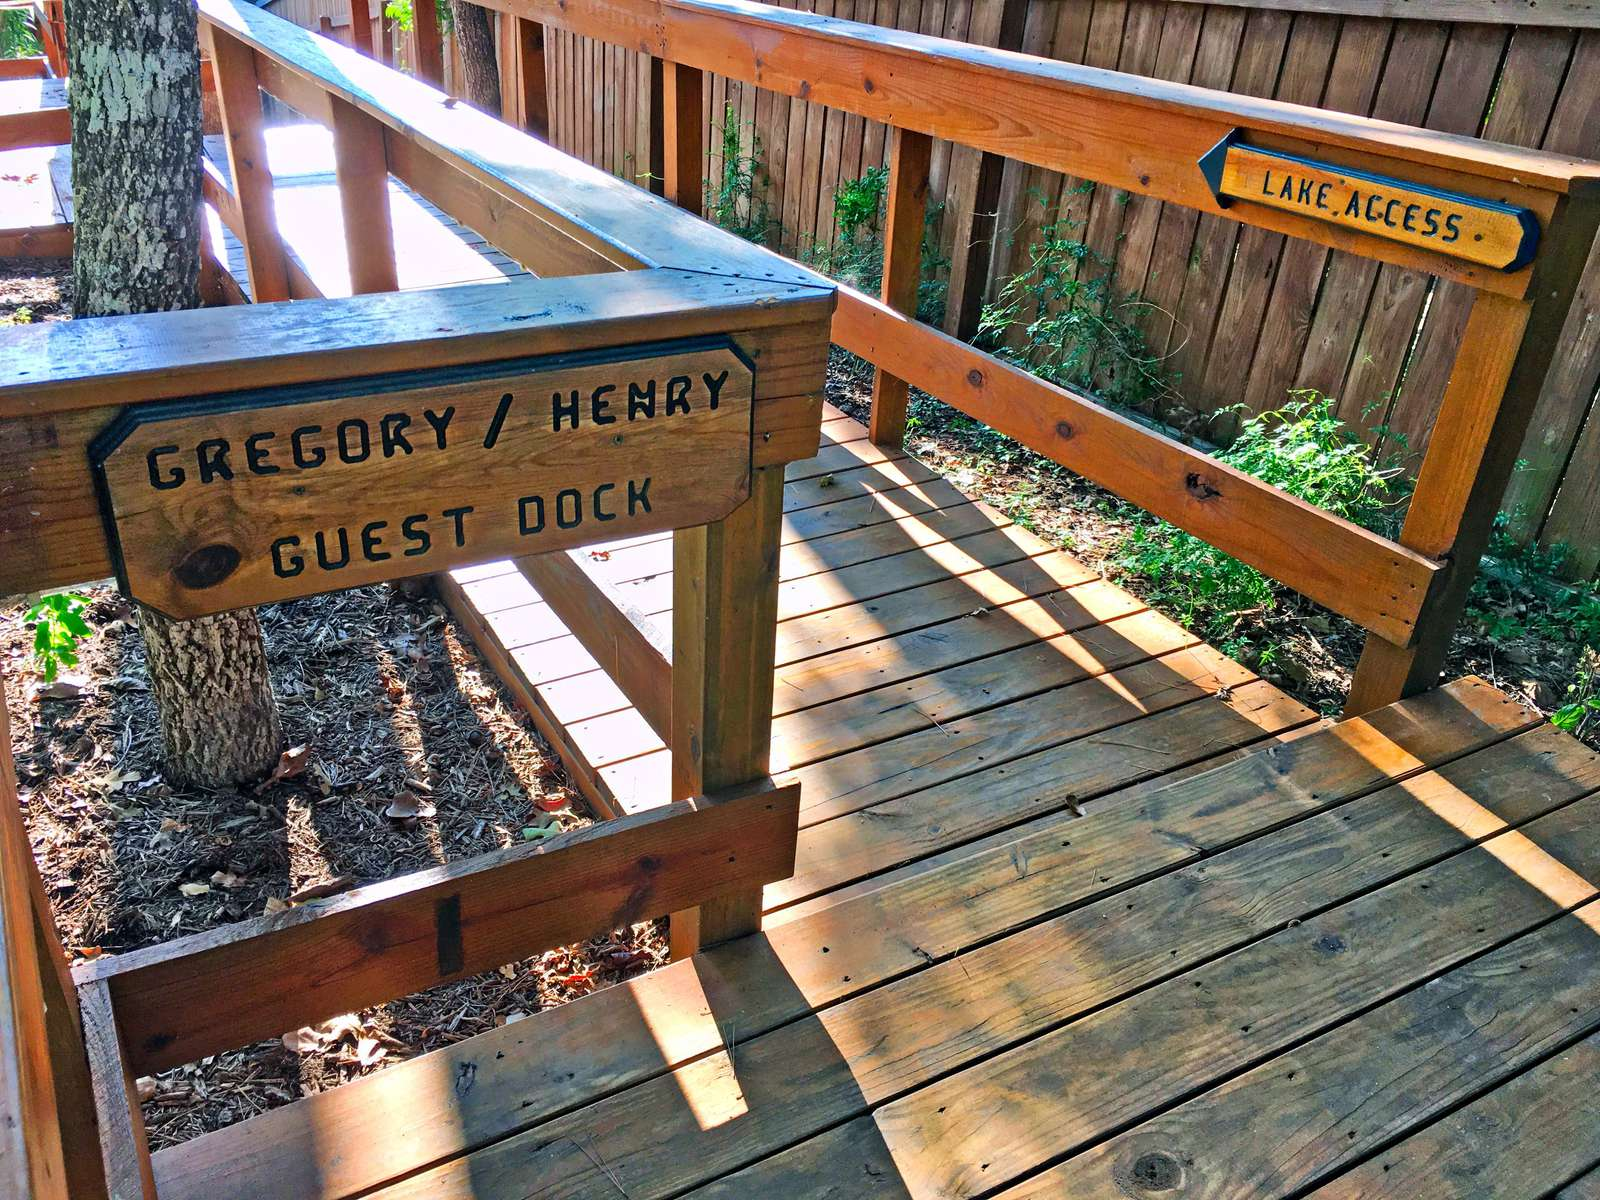 Head down the stairs (66) to reach your own dock with kayaks and fish cleaning station.